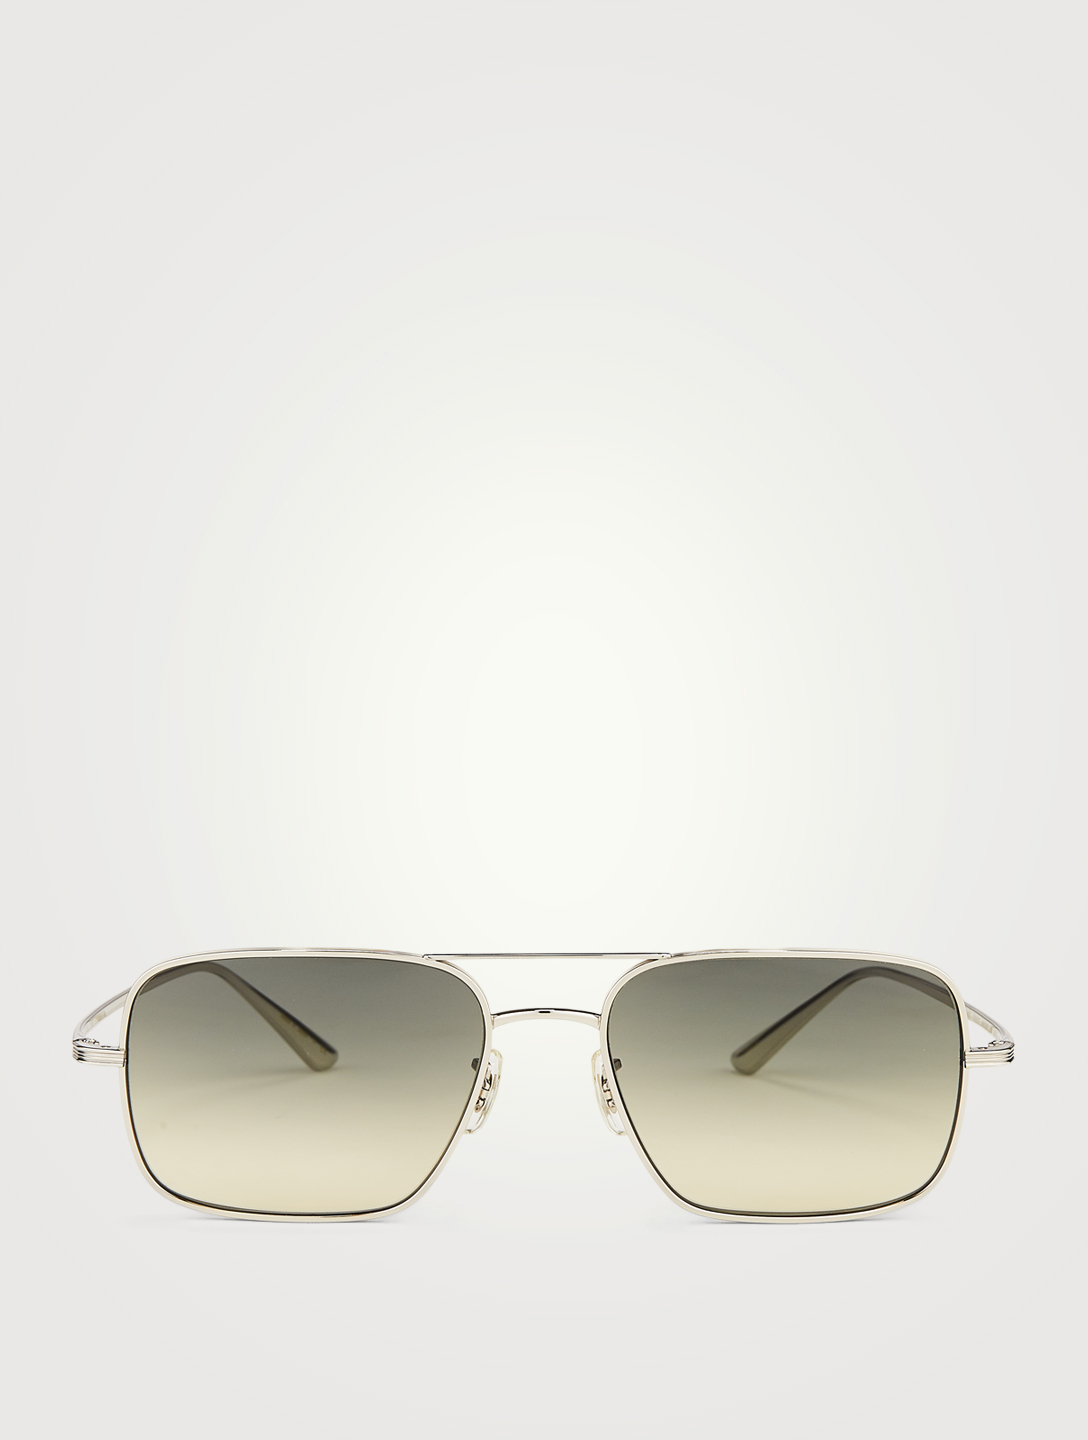 OLIVER PEOPLES Victory Aviator Sunglasses Men's Metallic